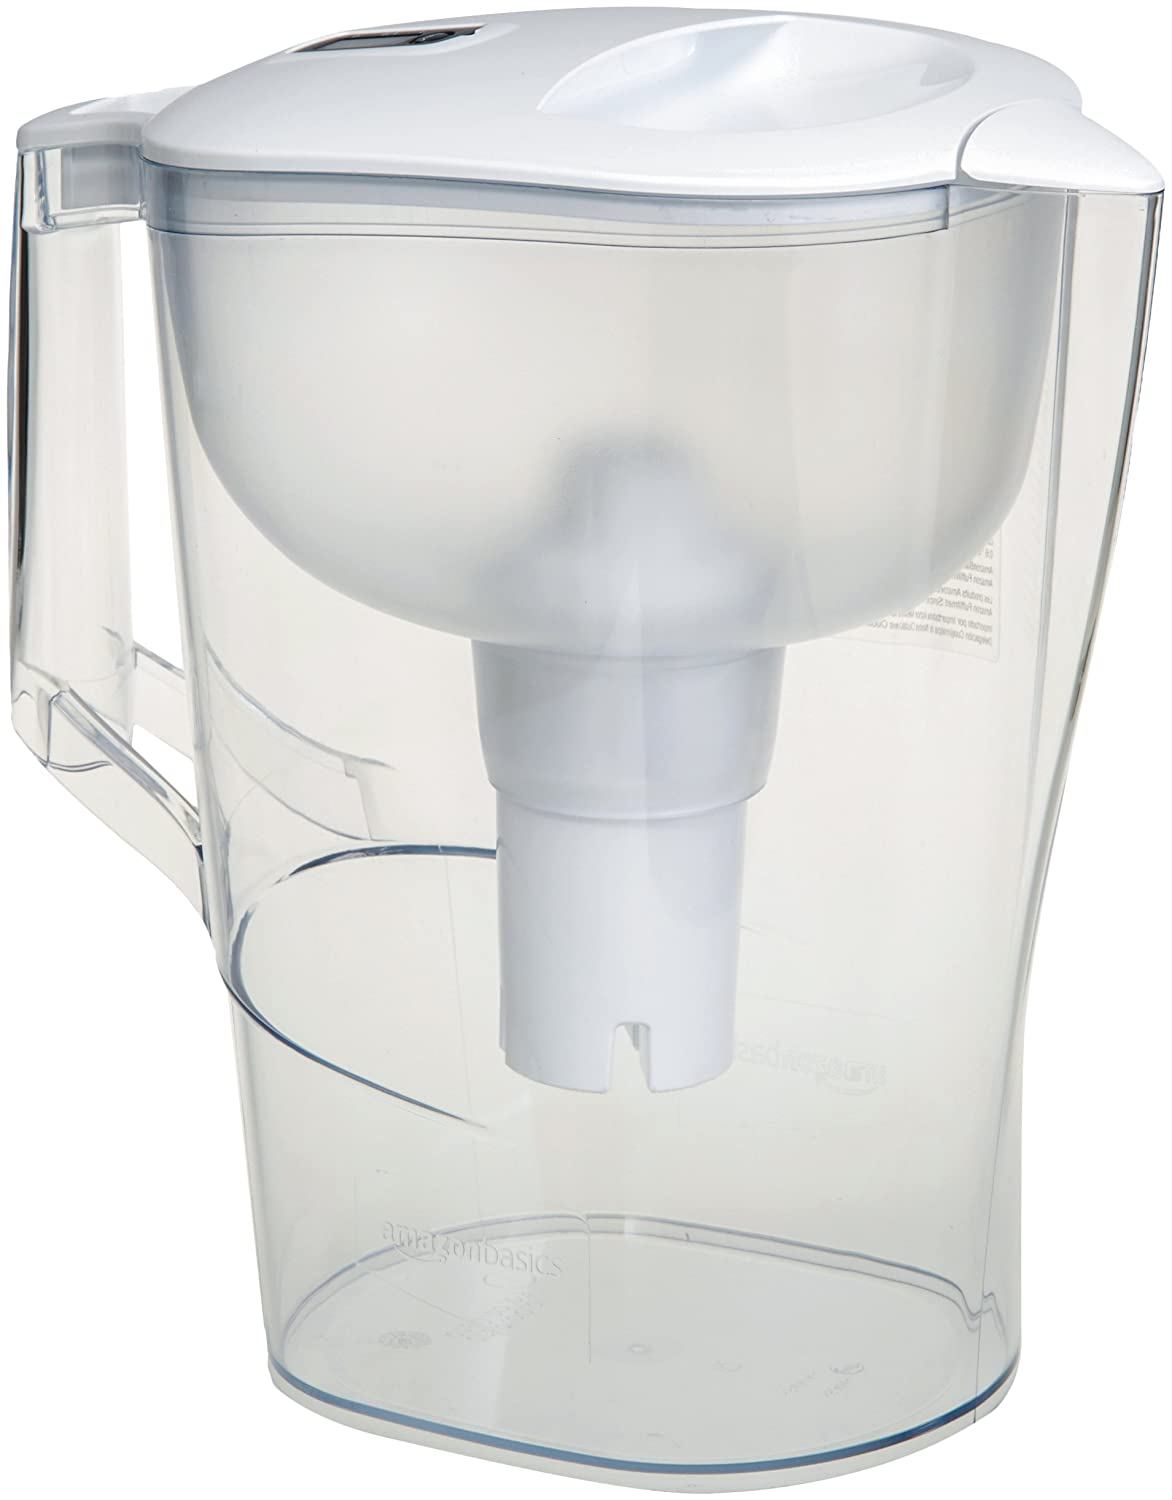 AmazonBasics 10-Cup Water Pitcher with Filter B06XYWH6BC